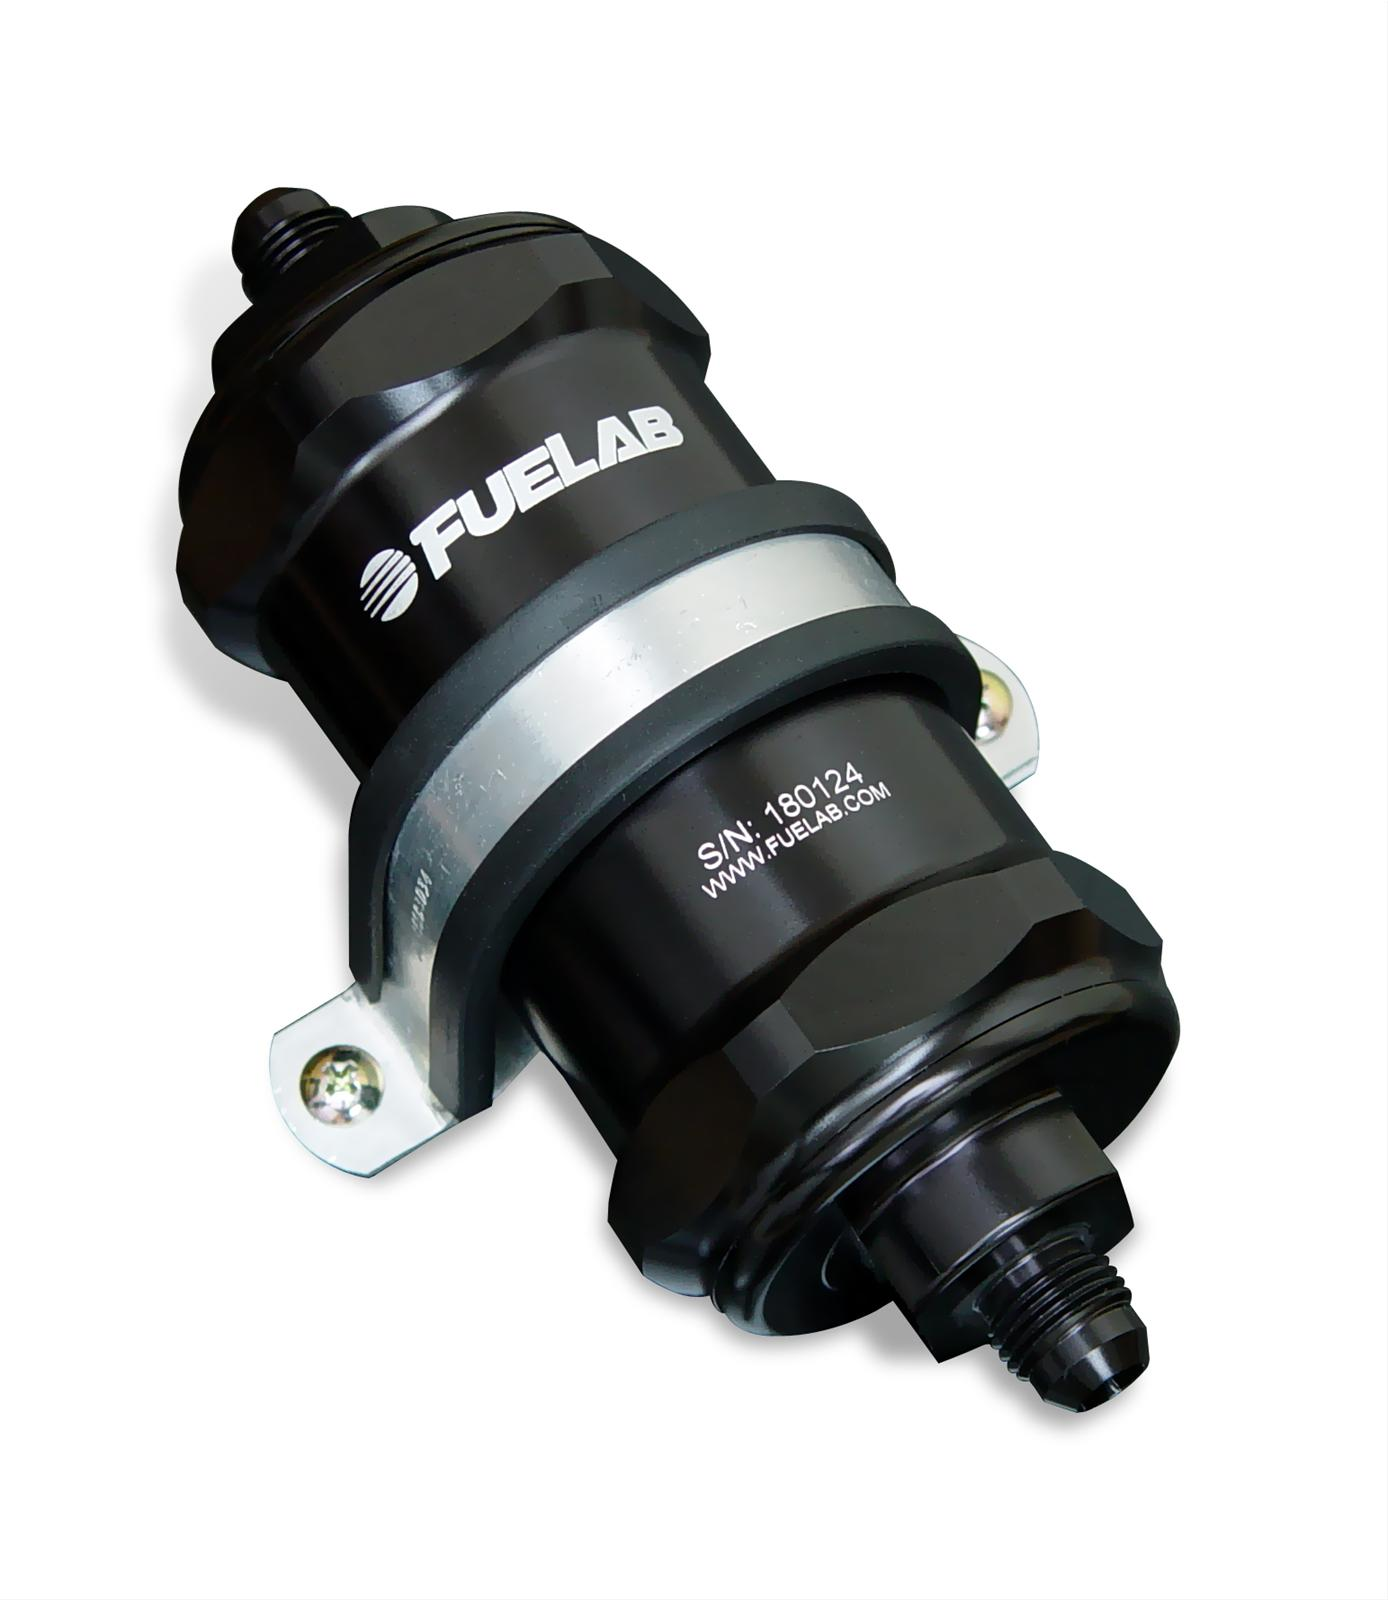 FUELAB 818 Series Inline Fuel Filters 81801-1 - Free Shipping on Orders  Over $99 at Summit Racing